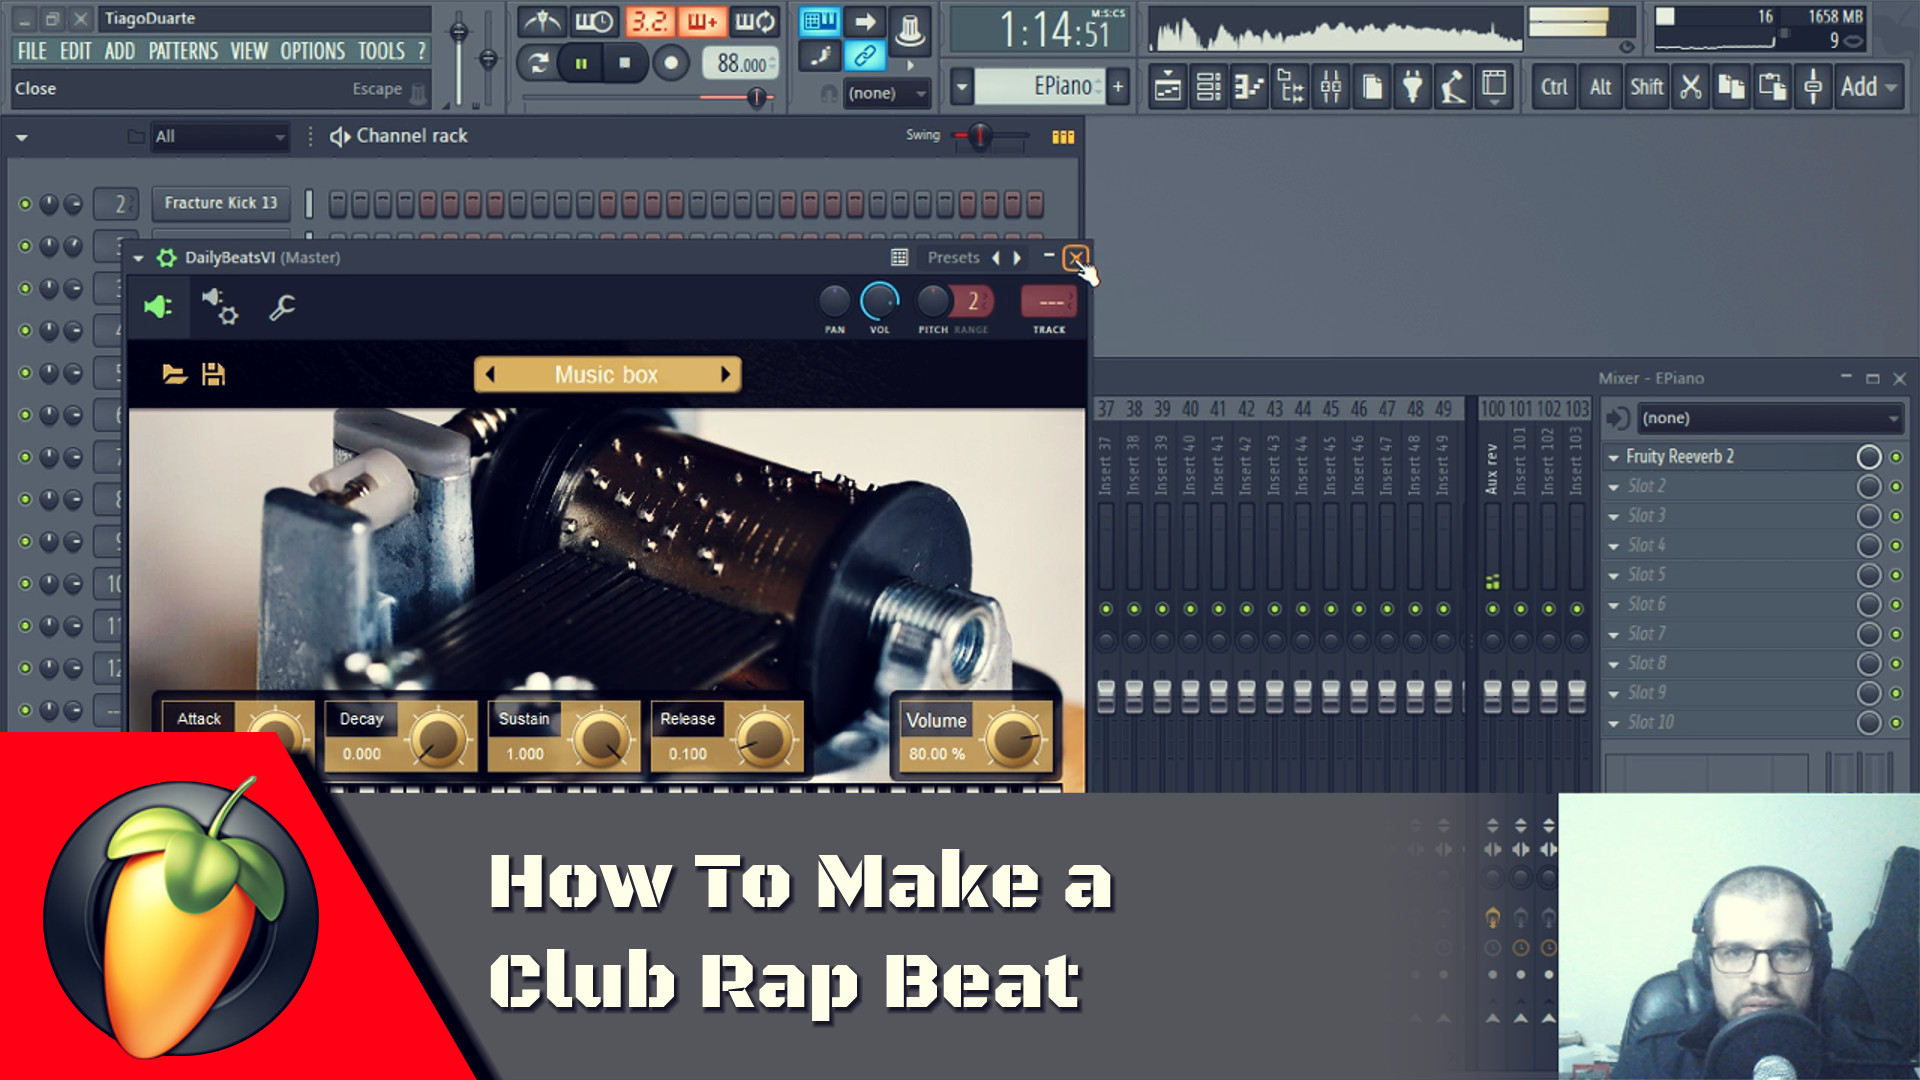 Club Rap Beat